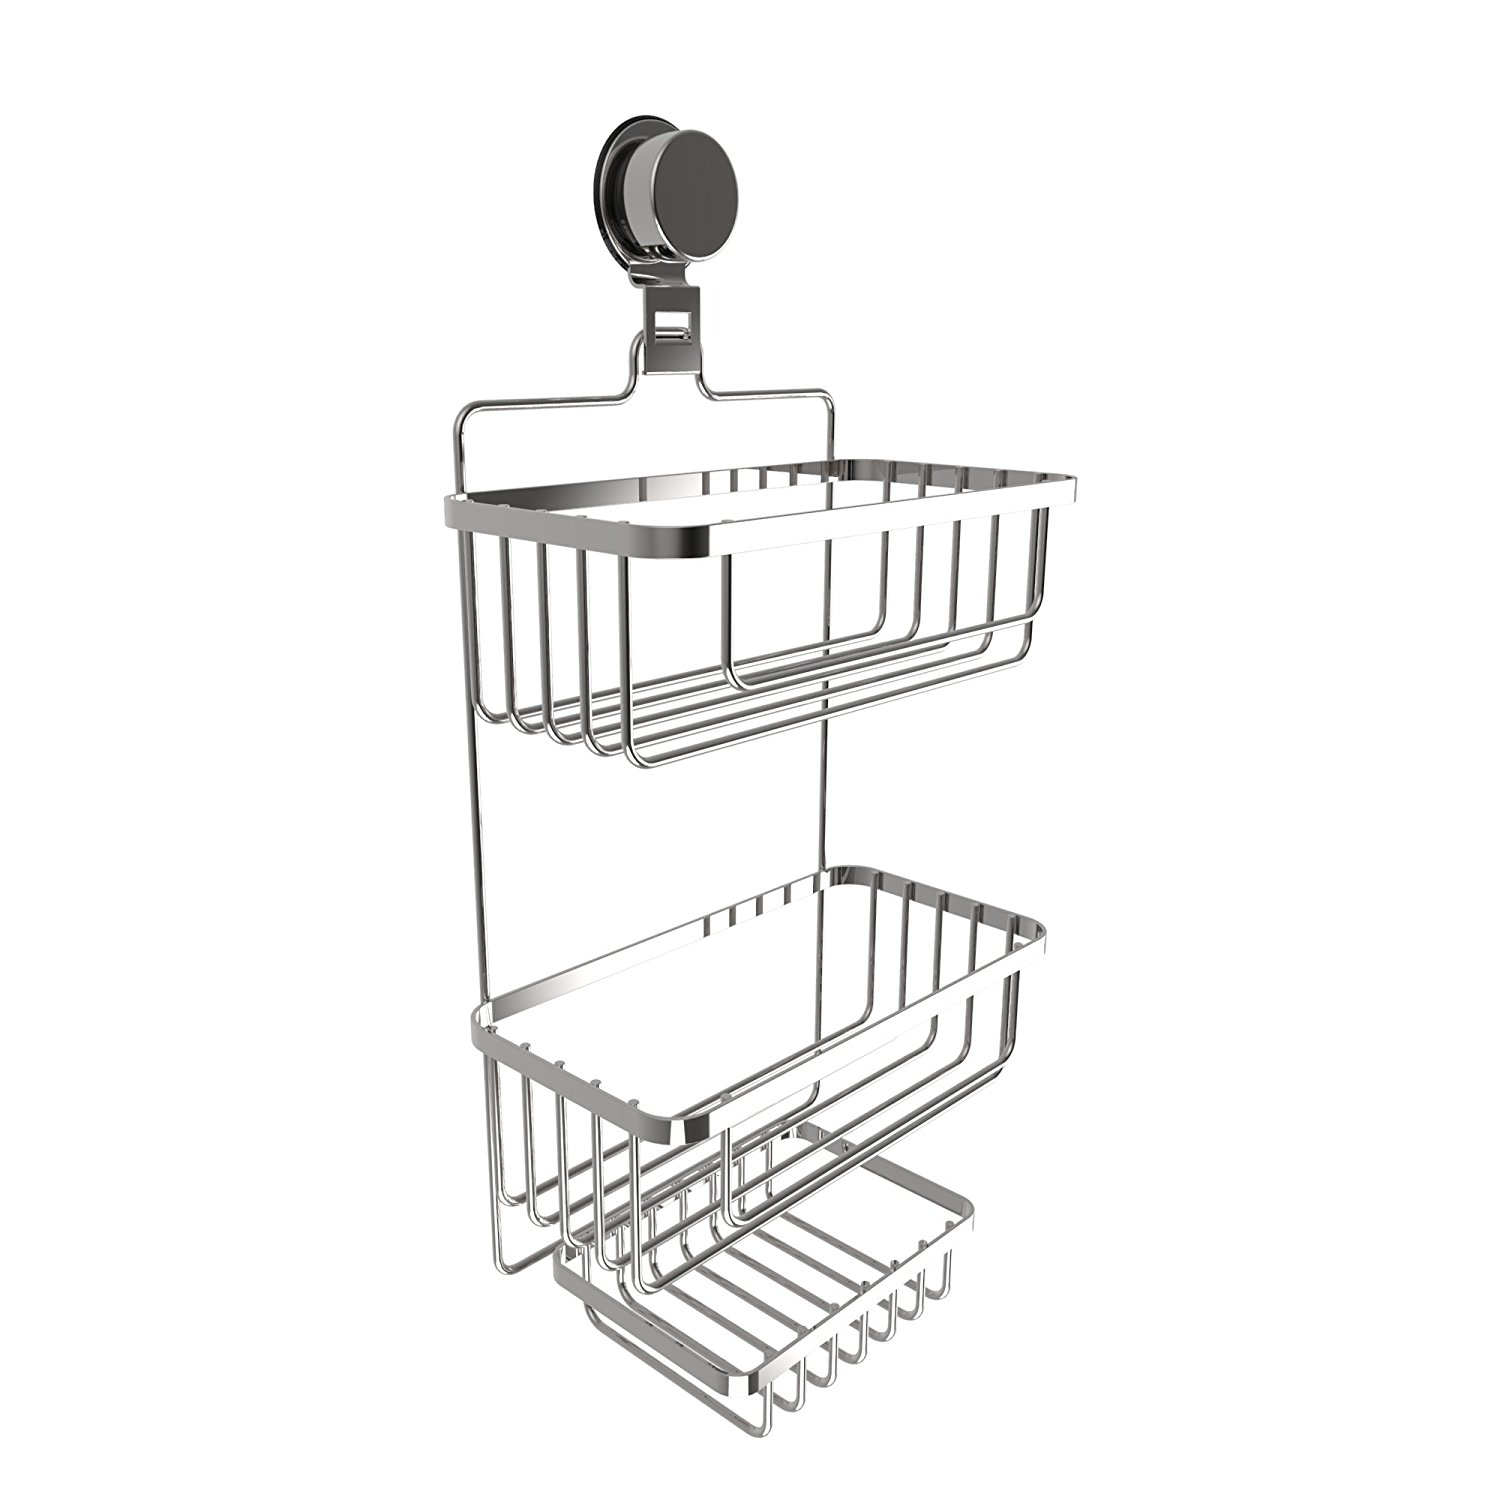 Wall Mounted 3 Tier Caddy-Hanging Shower Storage Rack for...